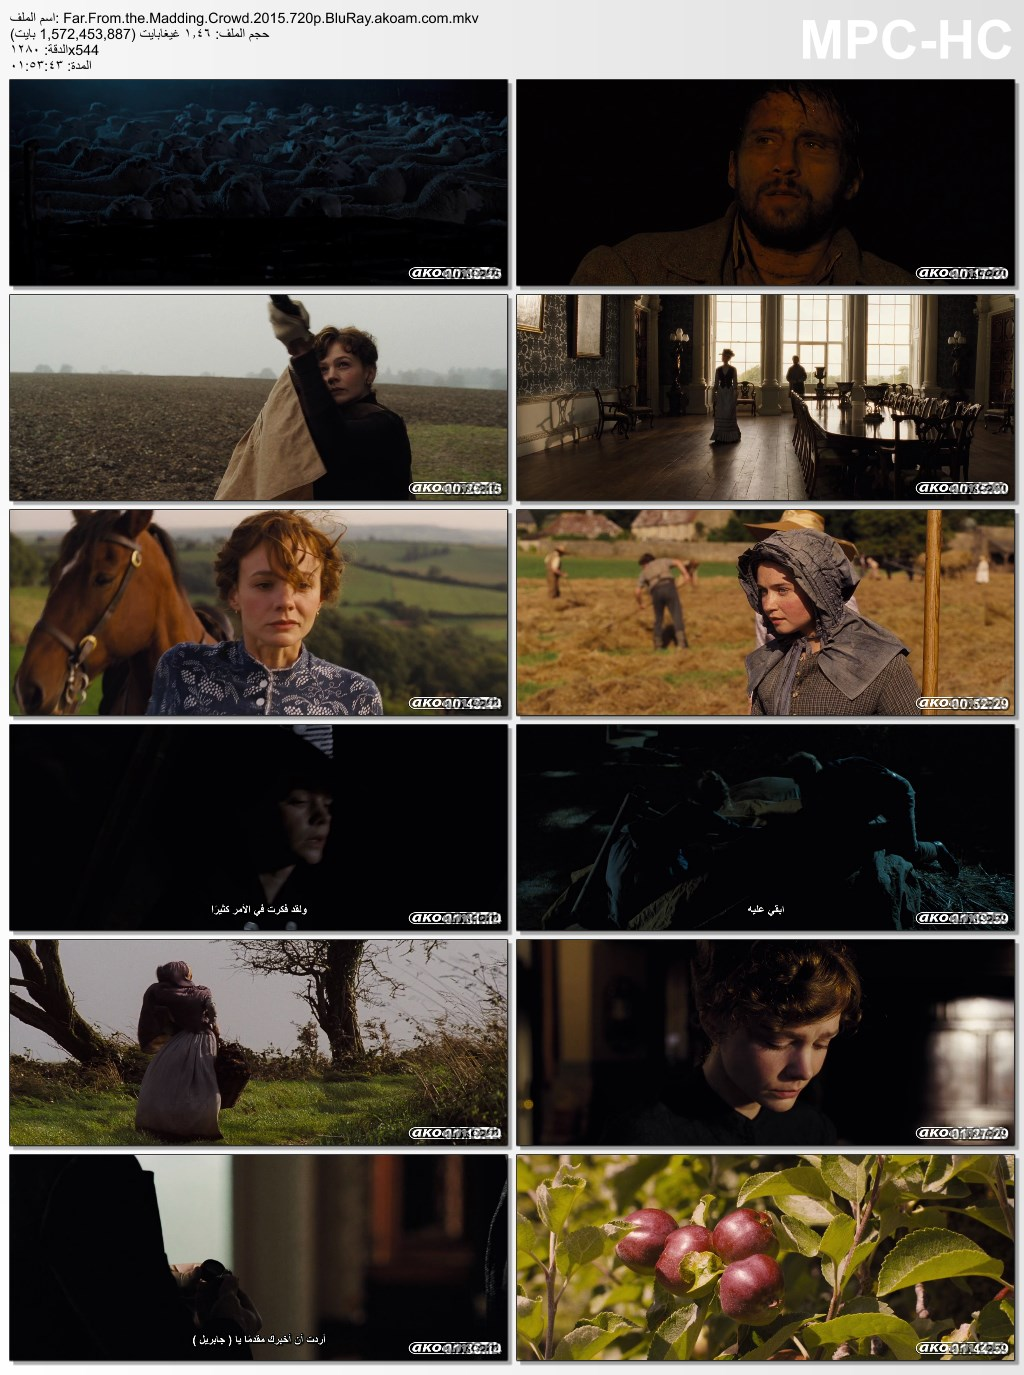 Far from the Madding Crowd,Far from the Madding Crowd 2015,الدراما,الرومانسية